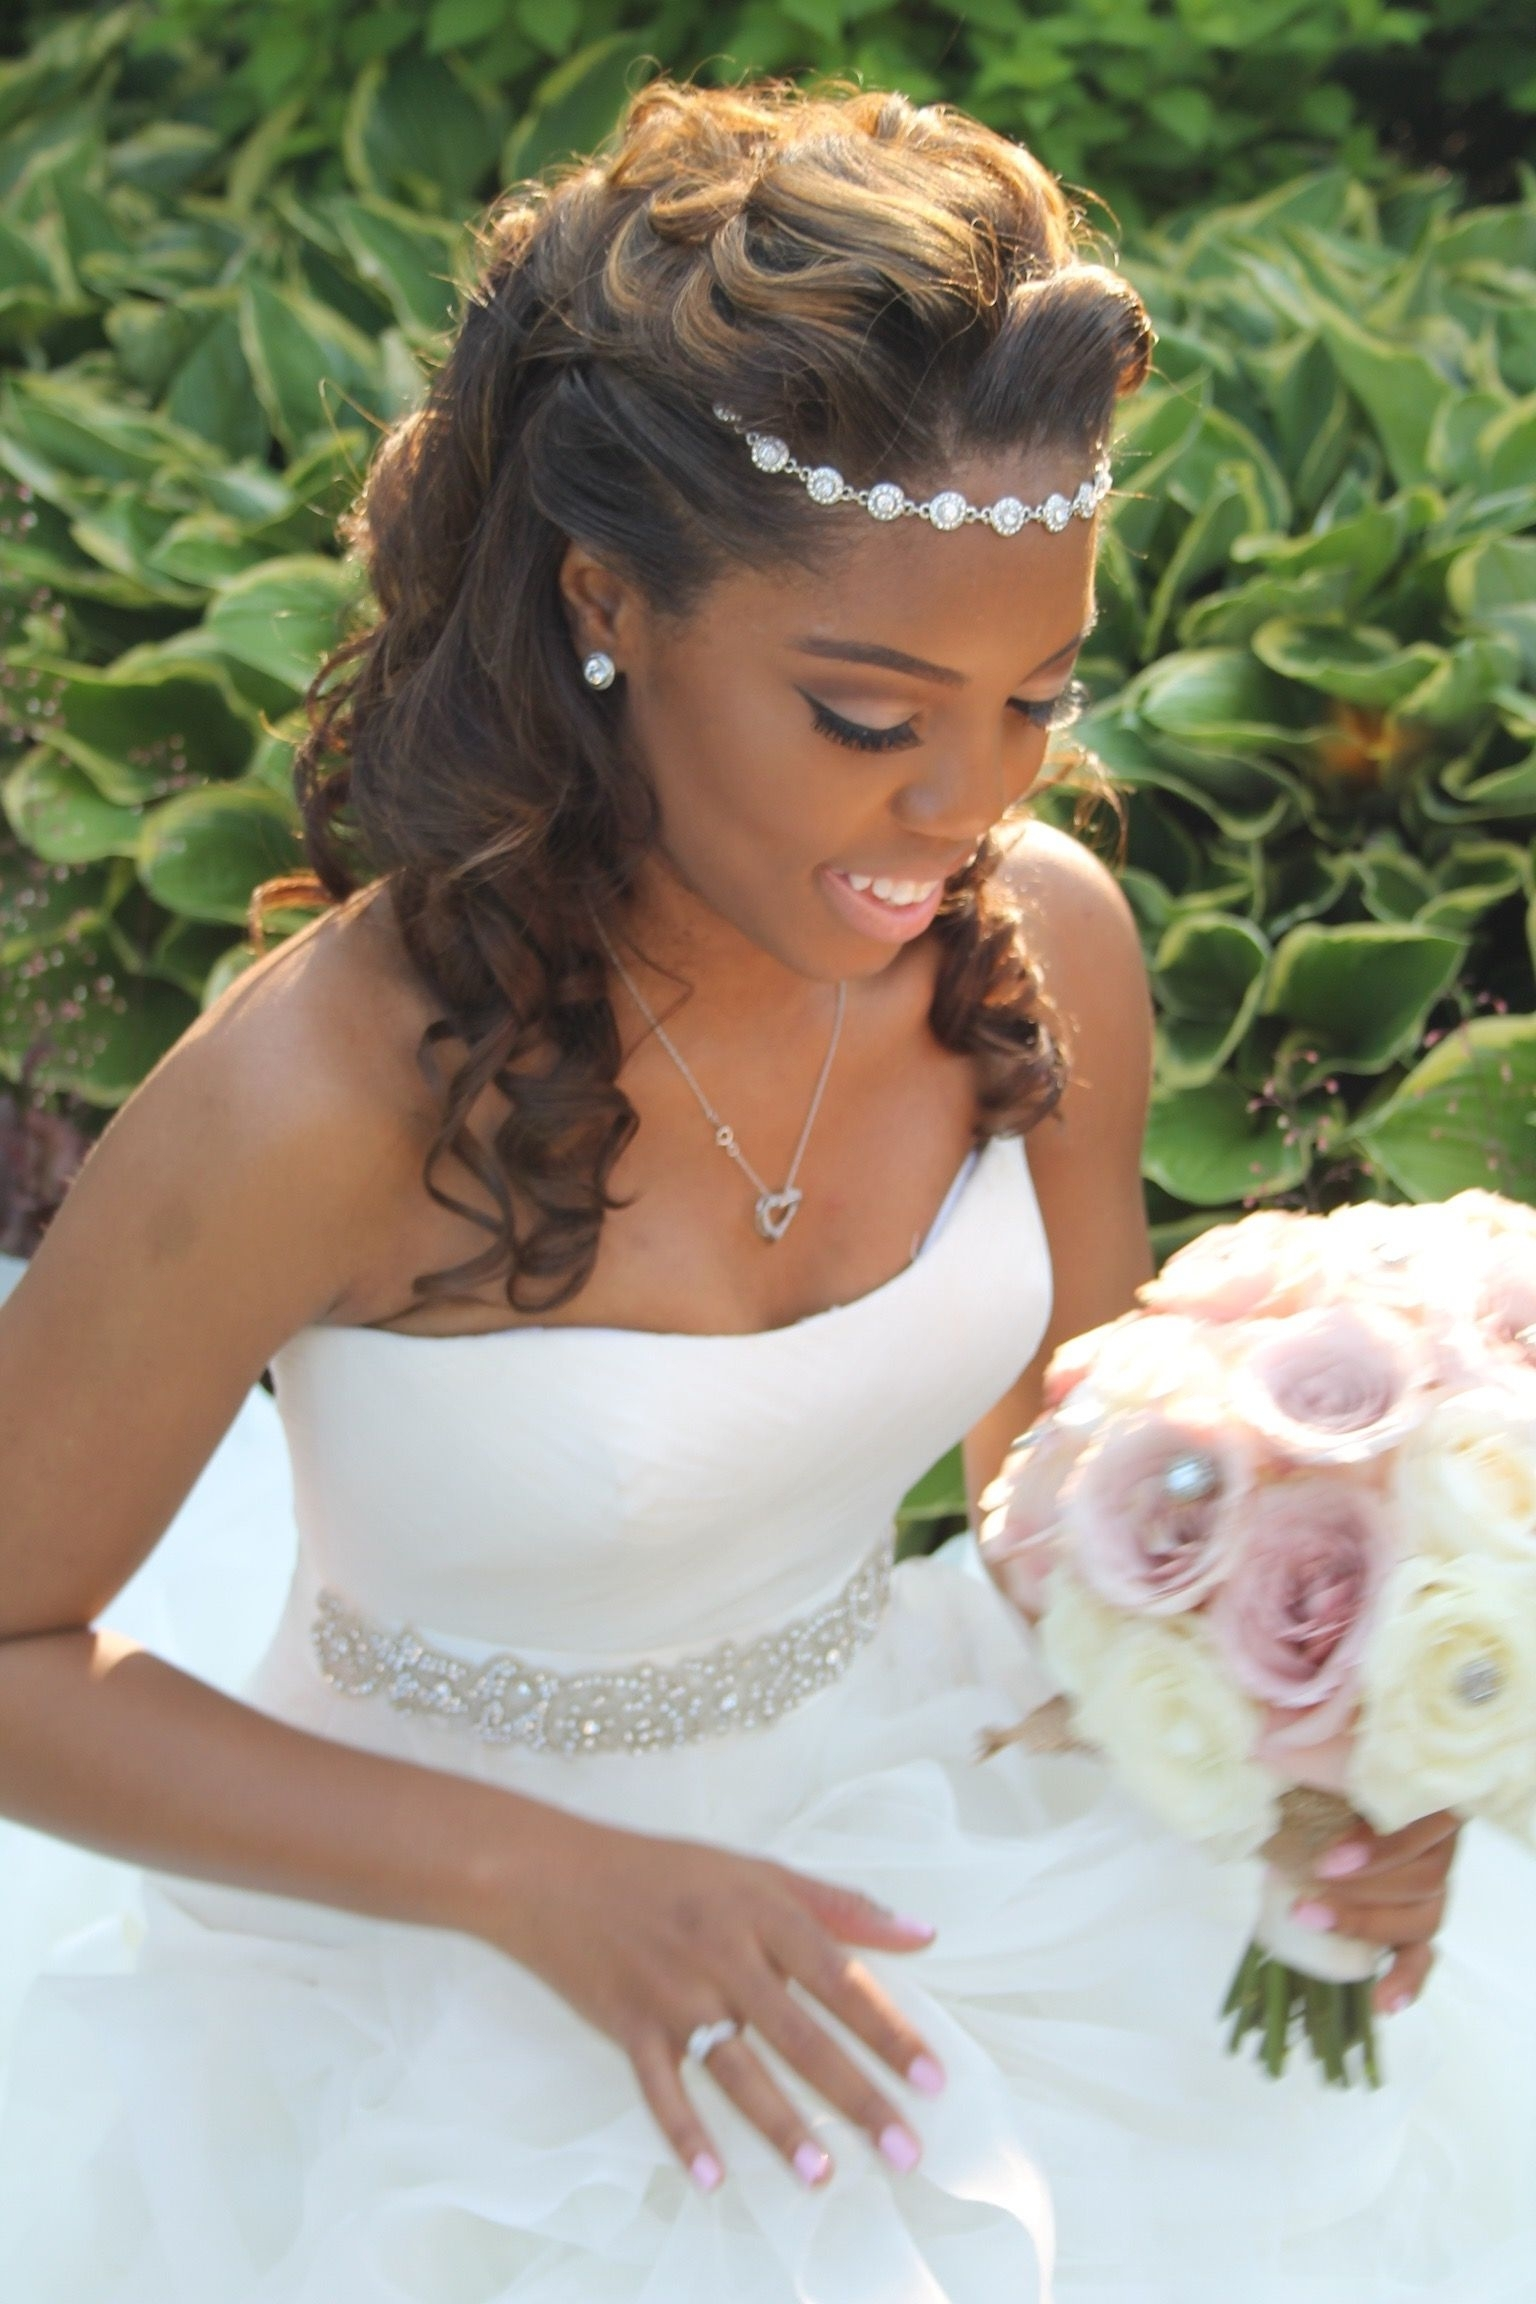 Elegant Bridal Up Do Hairstyle! Halo Hair Piece! No Vail Wedding Inside Trendy Wedding Hairstyles With Hair Piece (Gallery 15 of 15)